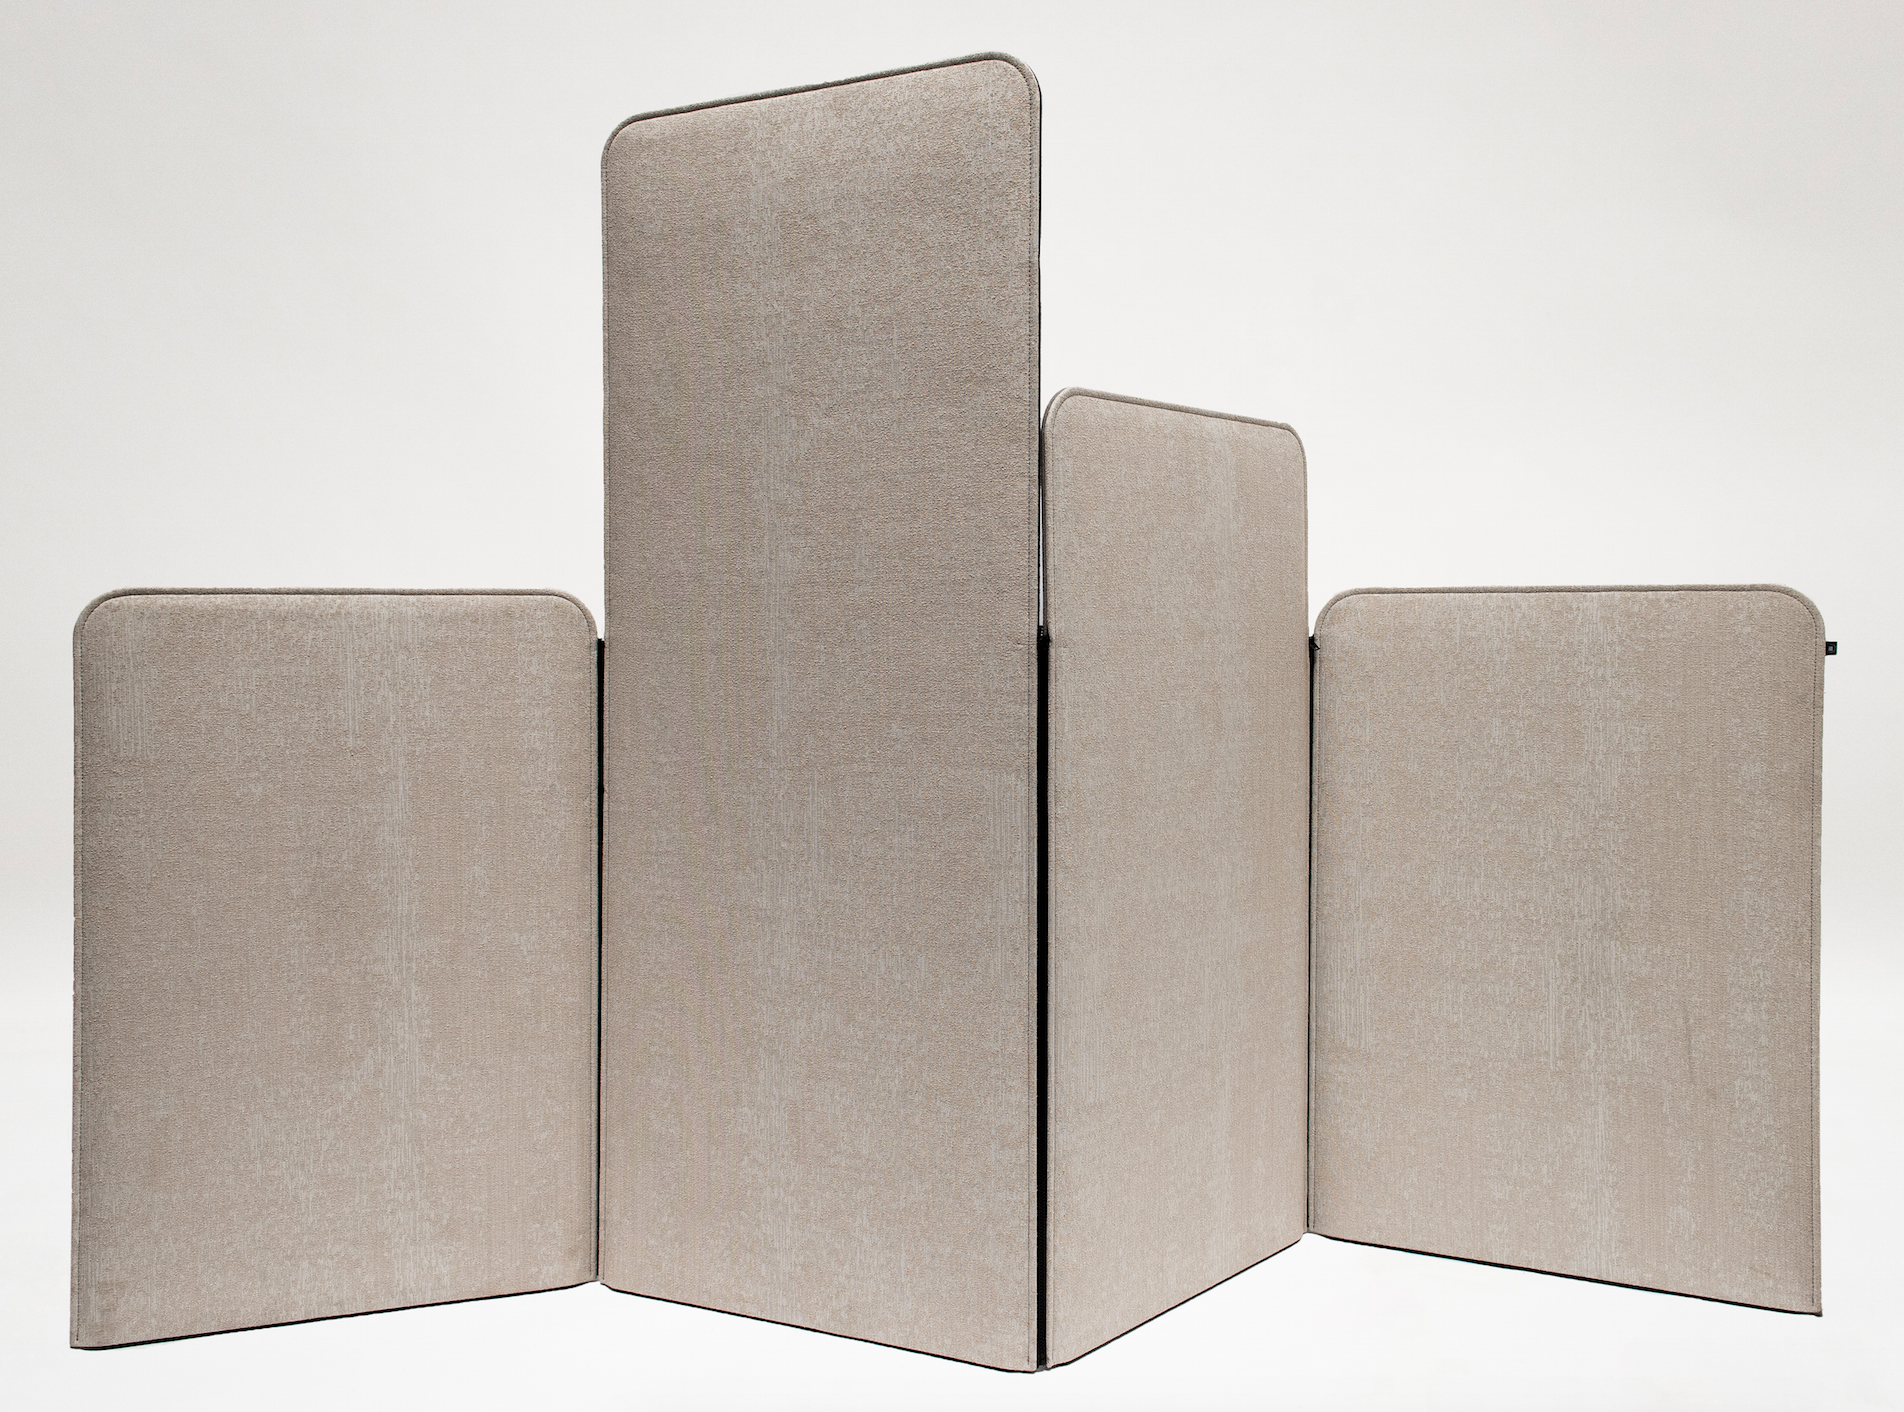 buzziscreen mix from @buzzispace. partitions, room dividers